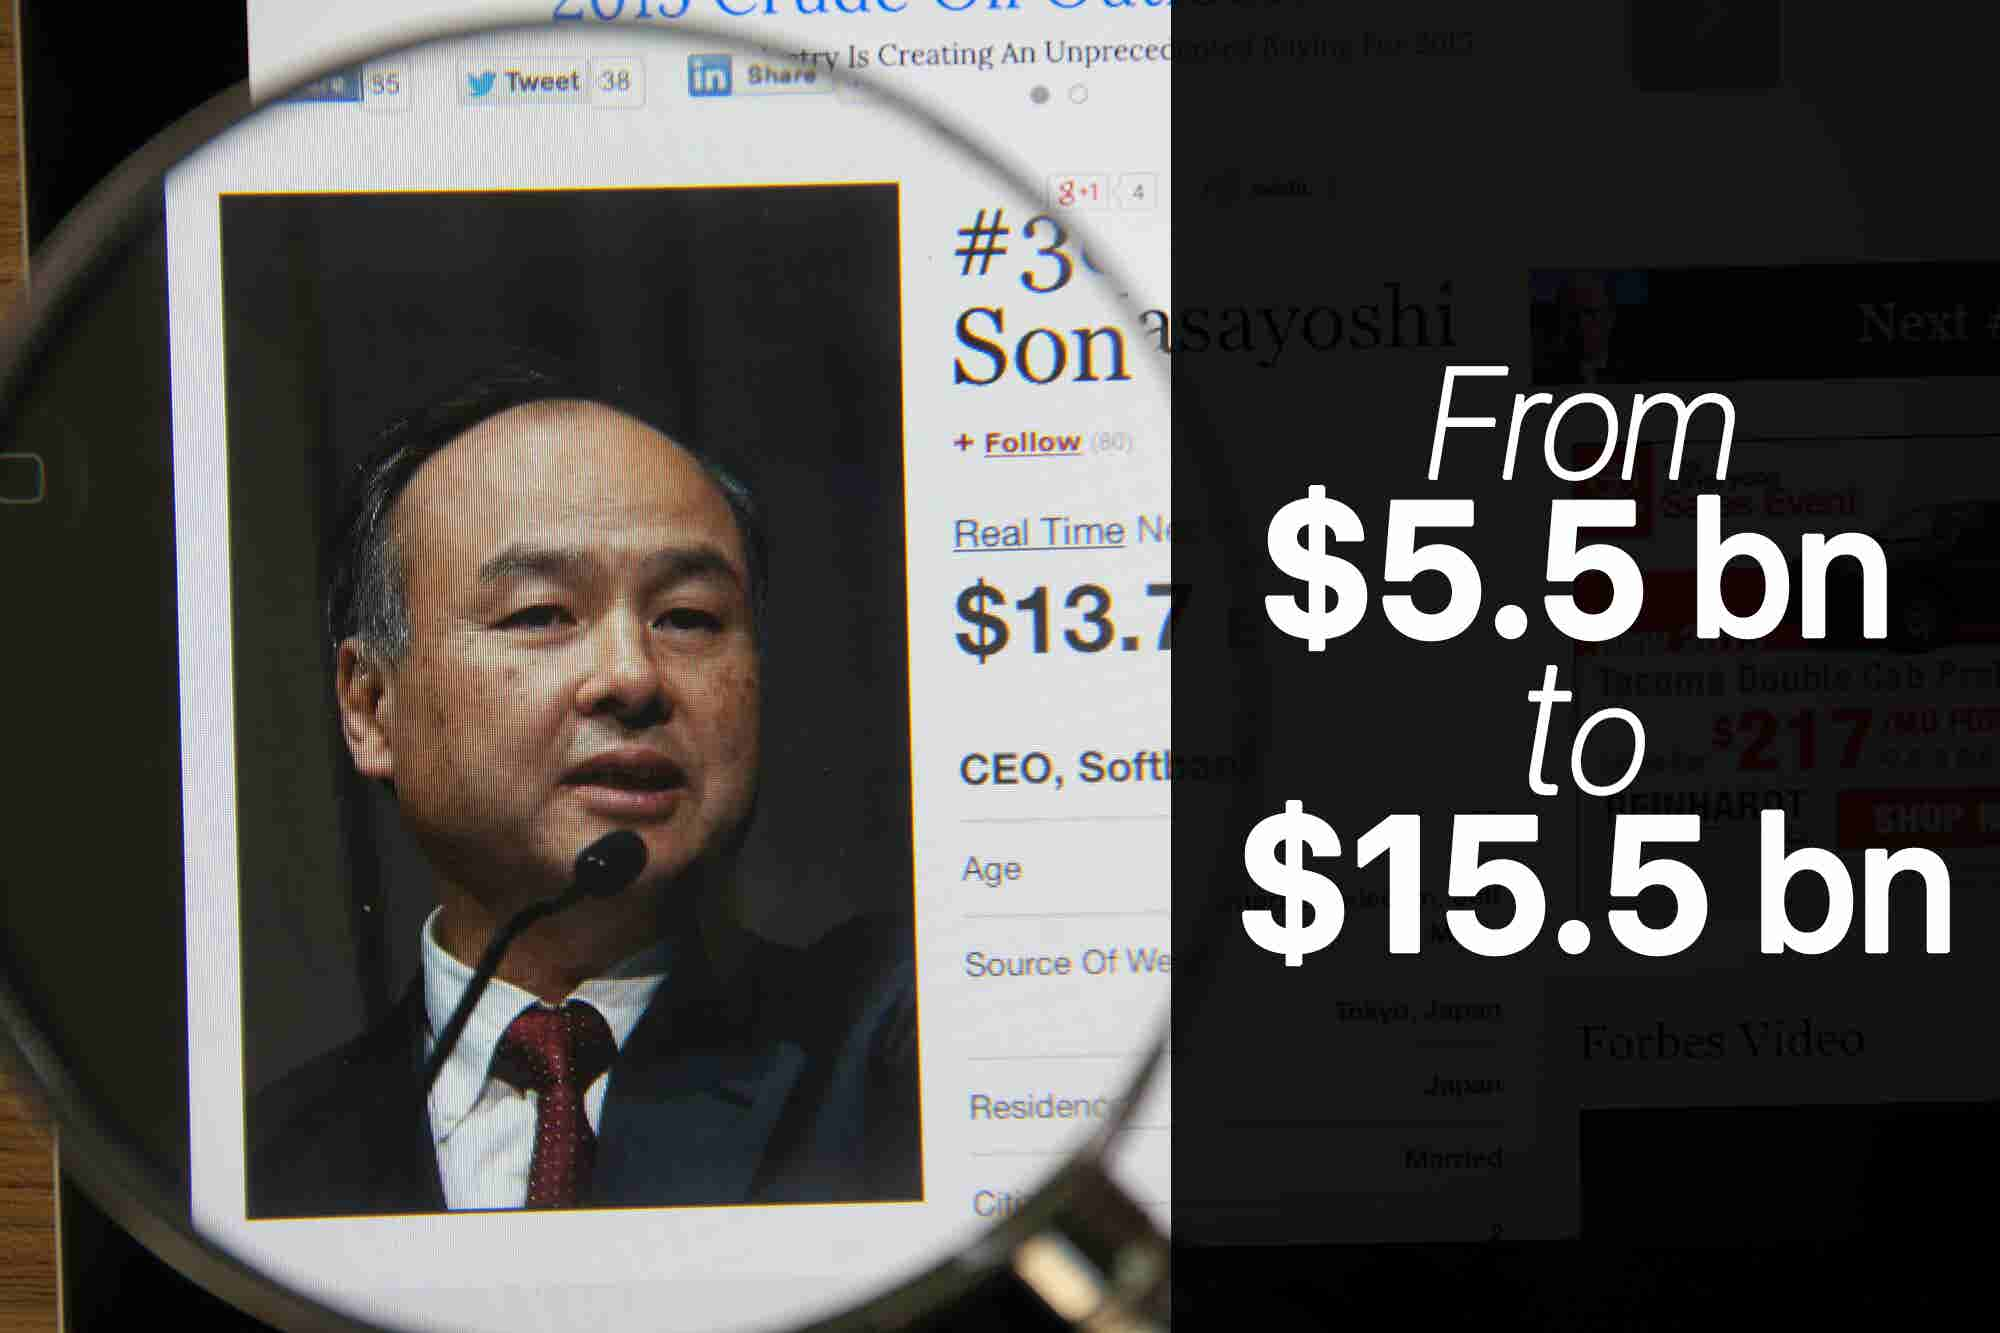 Friday Flashback: How Softbank's Founder Turned $5.5 billion to $15.5 billion Within a Day